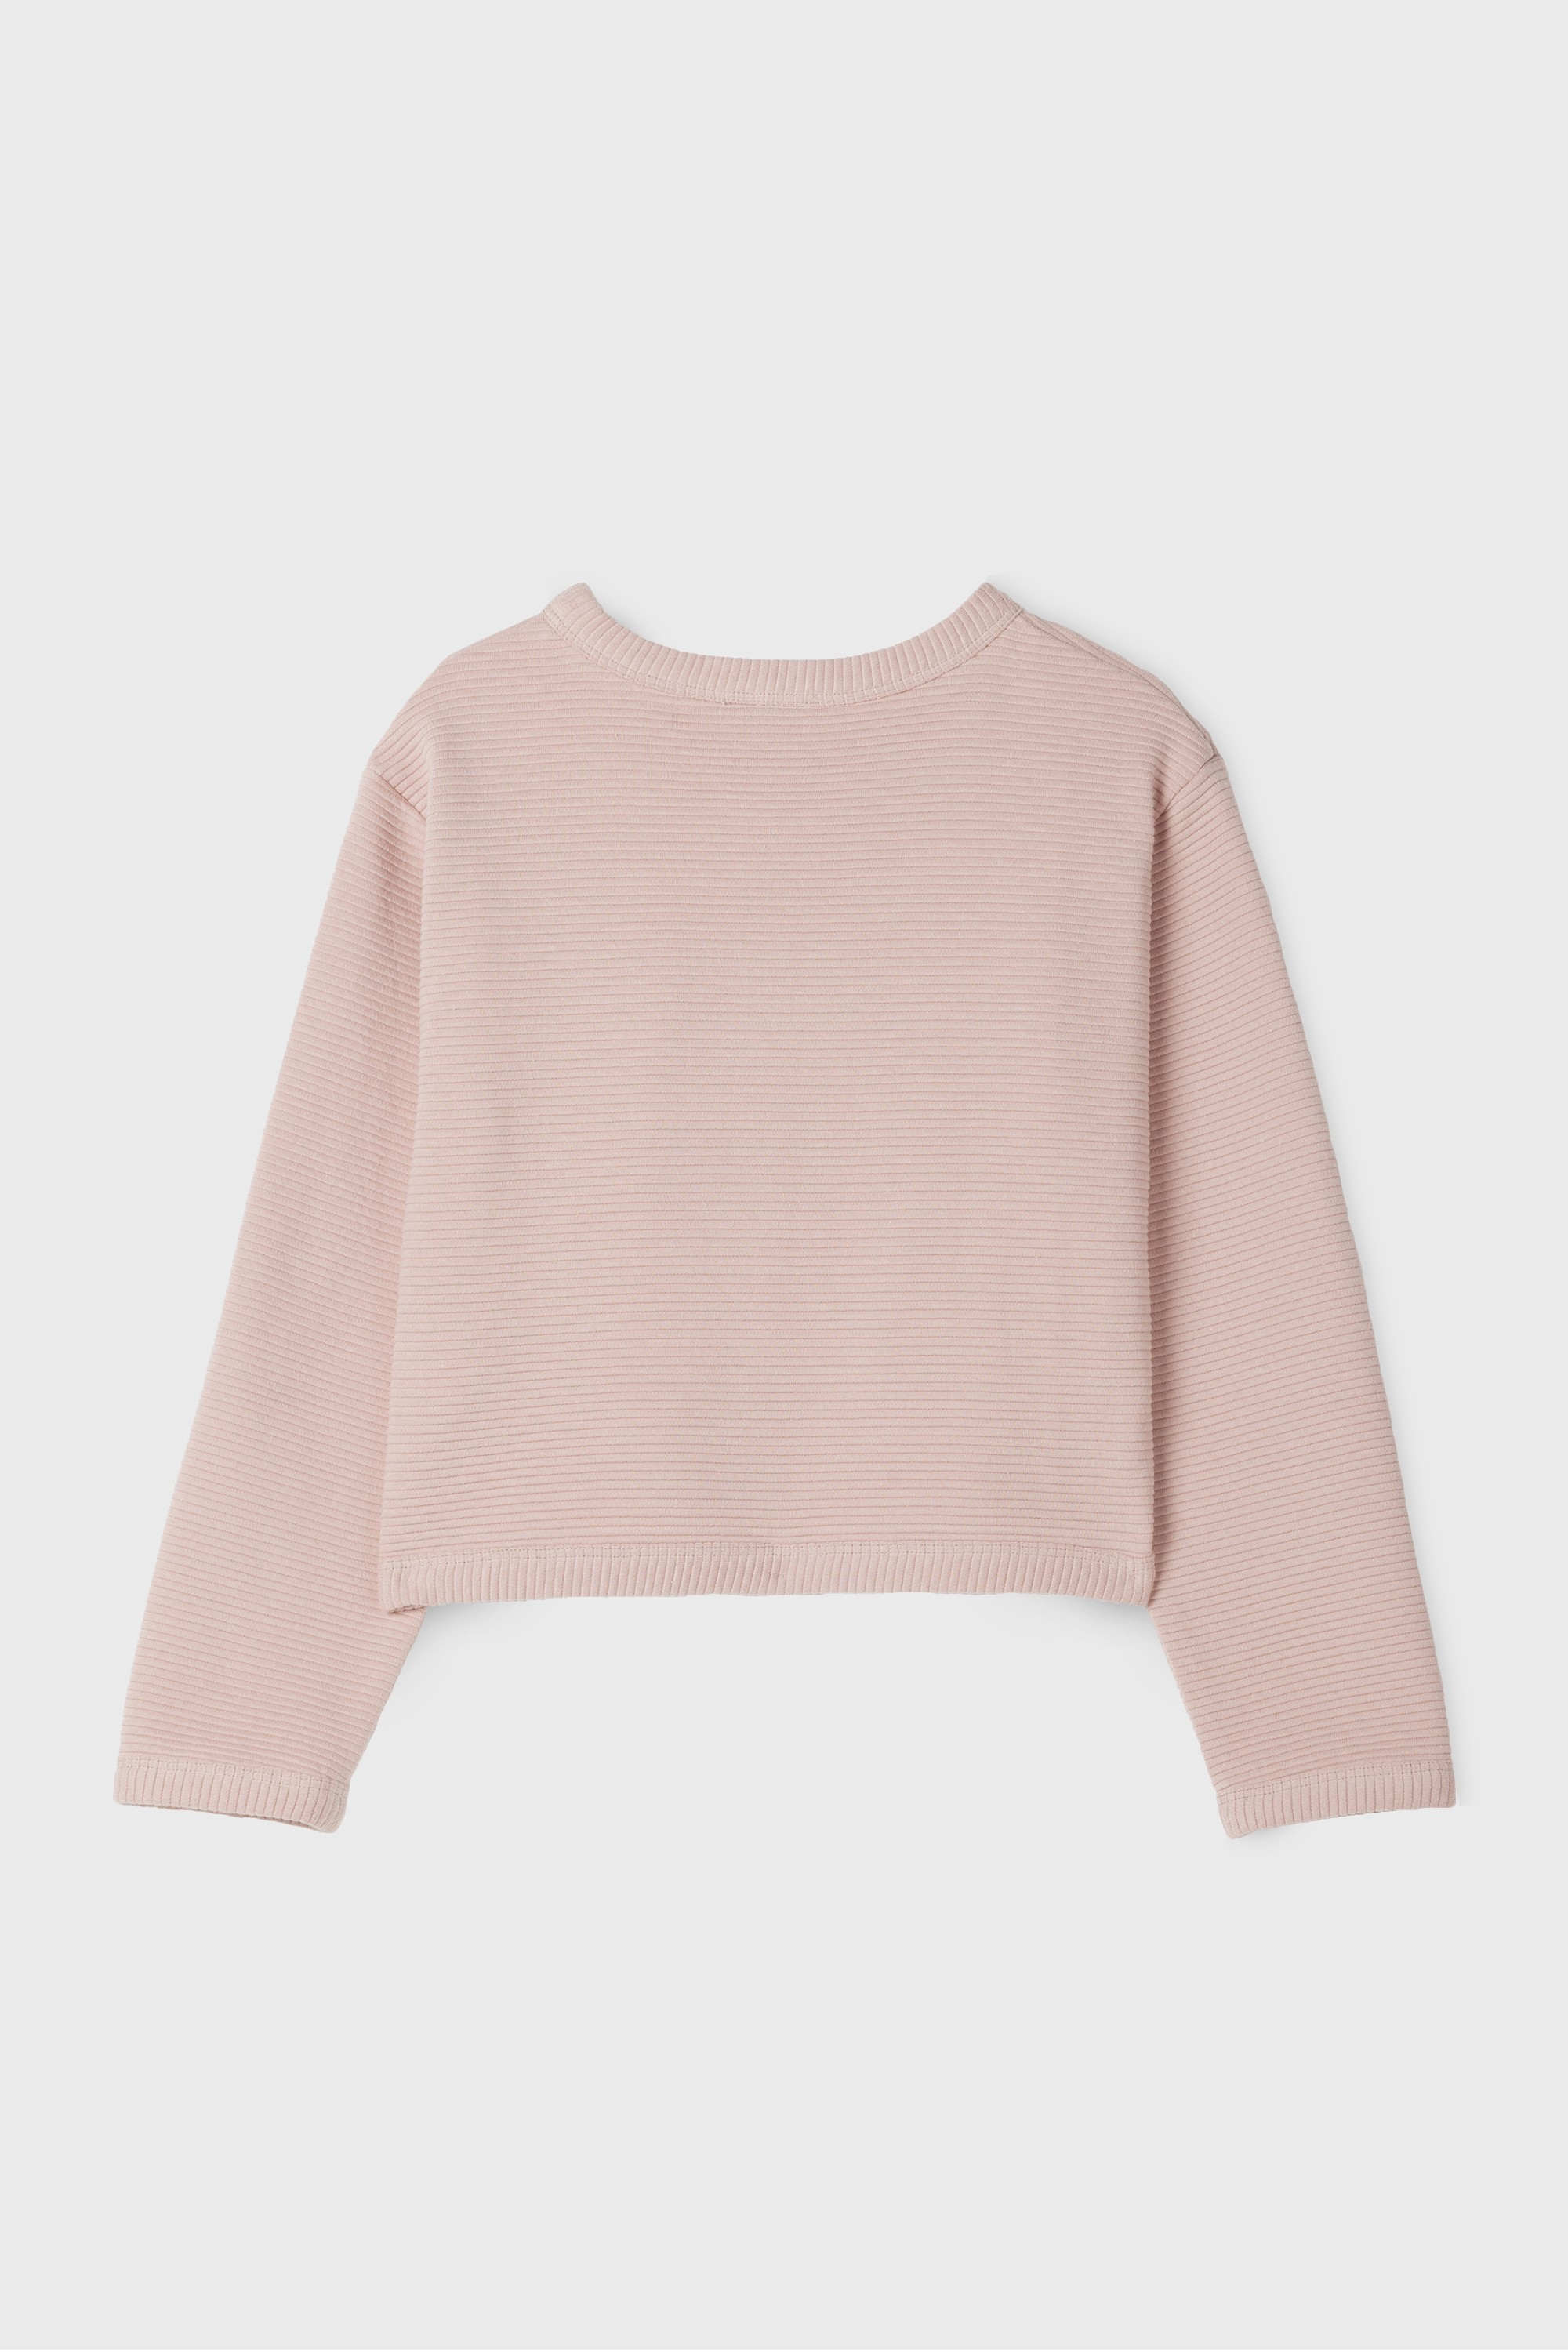 KID PINK SHIRRED SWEATSHIRT